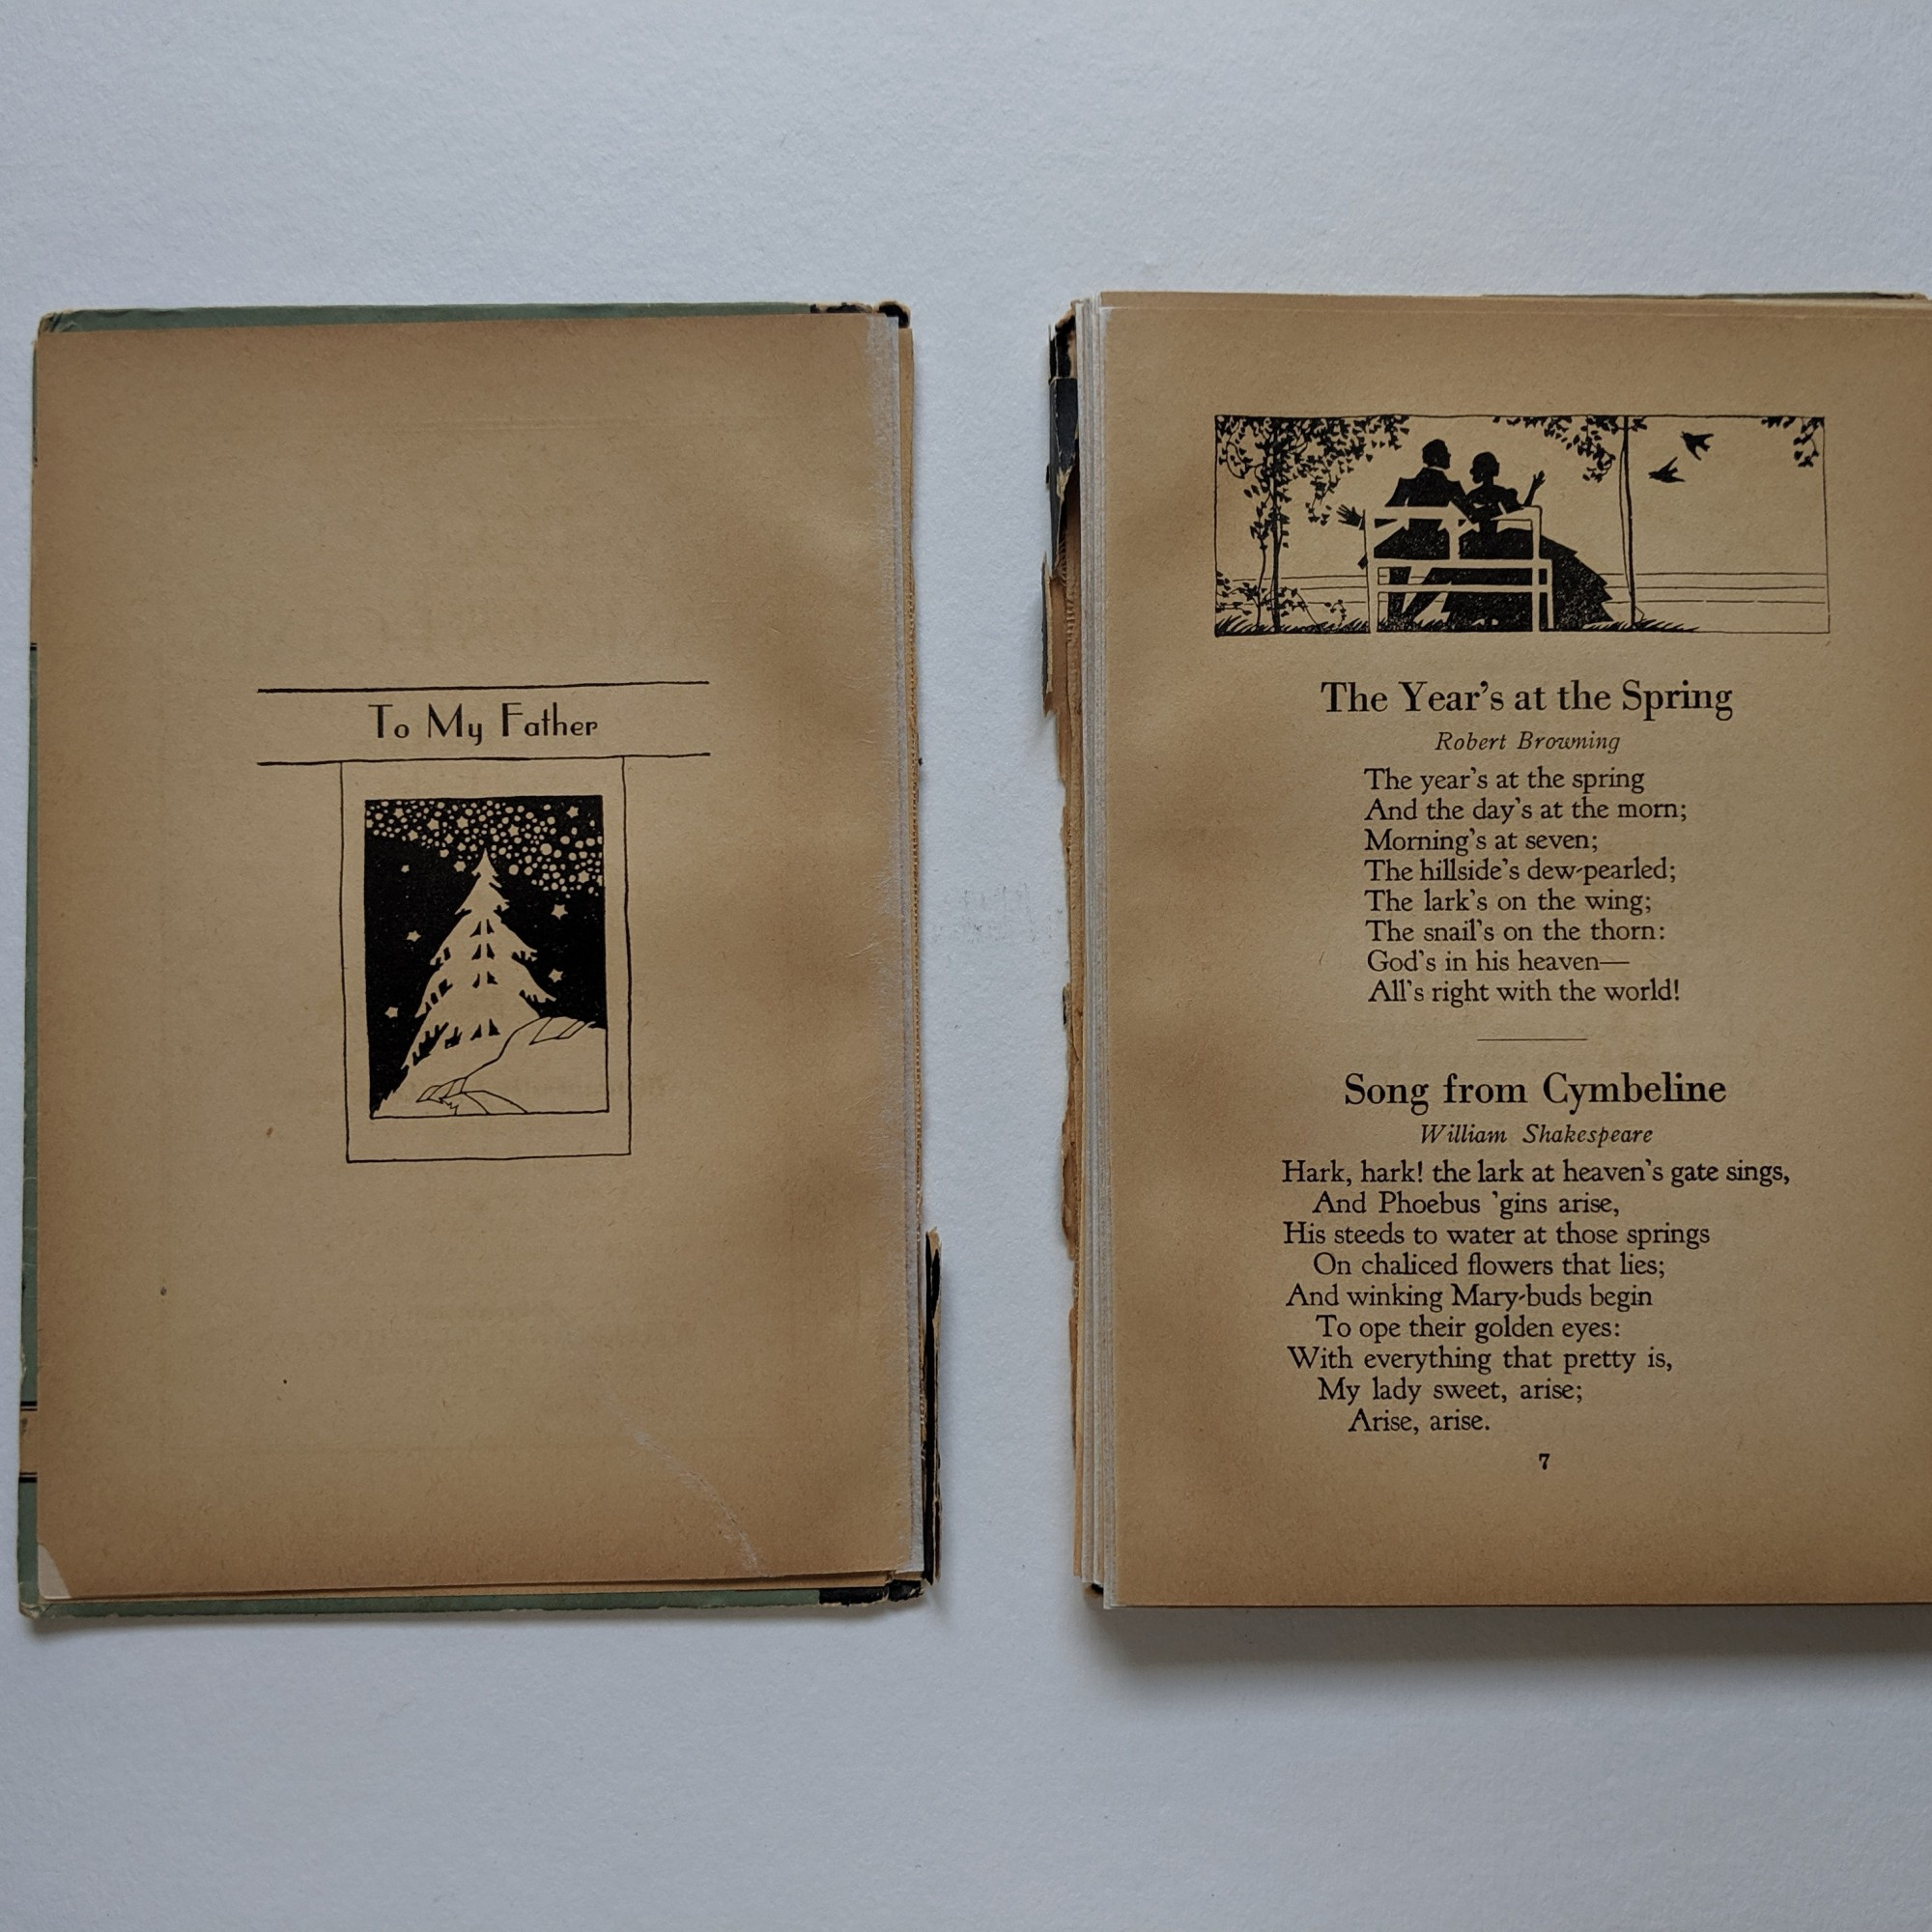 Holly Smith Book and Paper Conservation, Brighton, UK. A Book of Famous Poems - Before Treatment